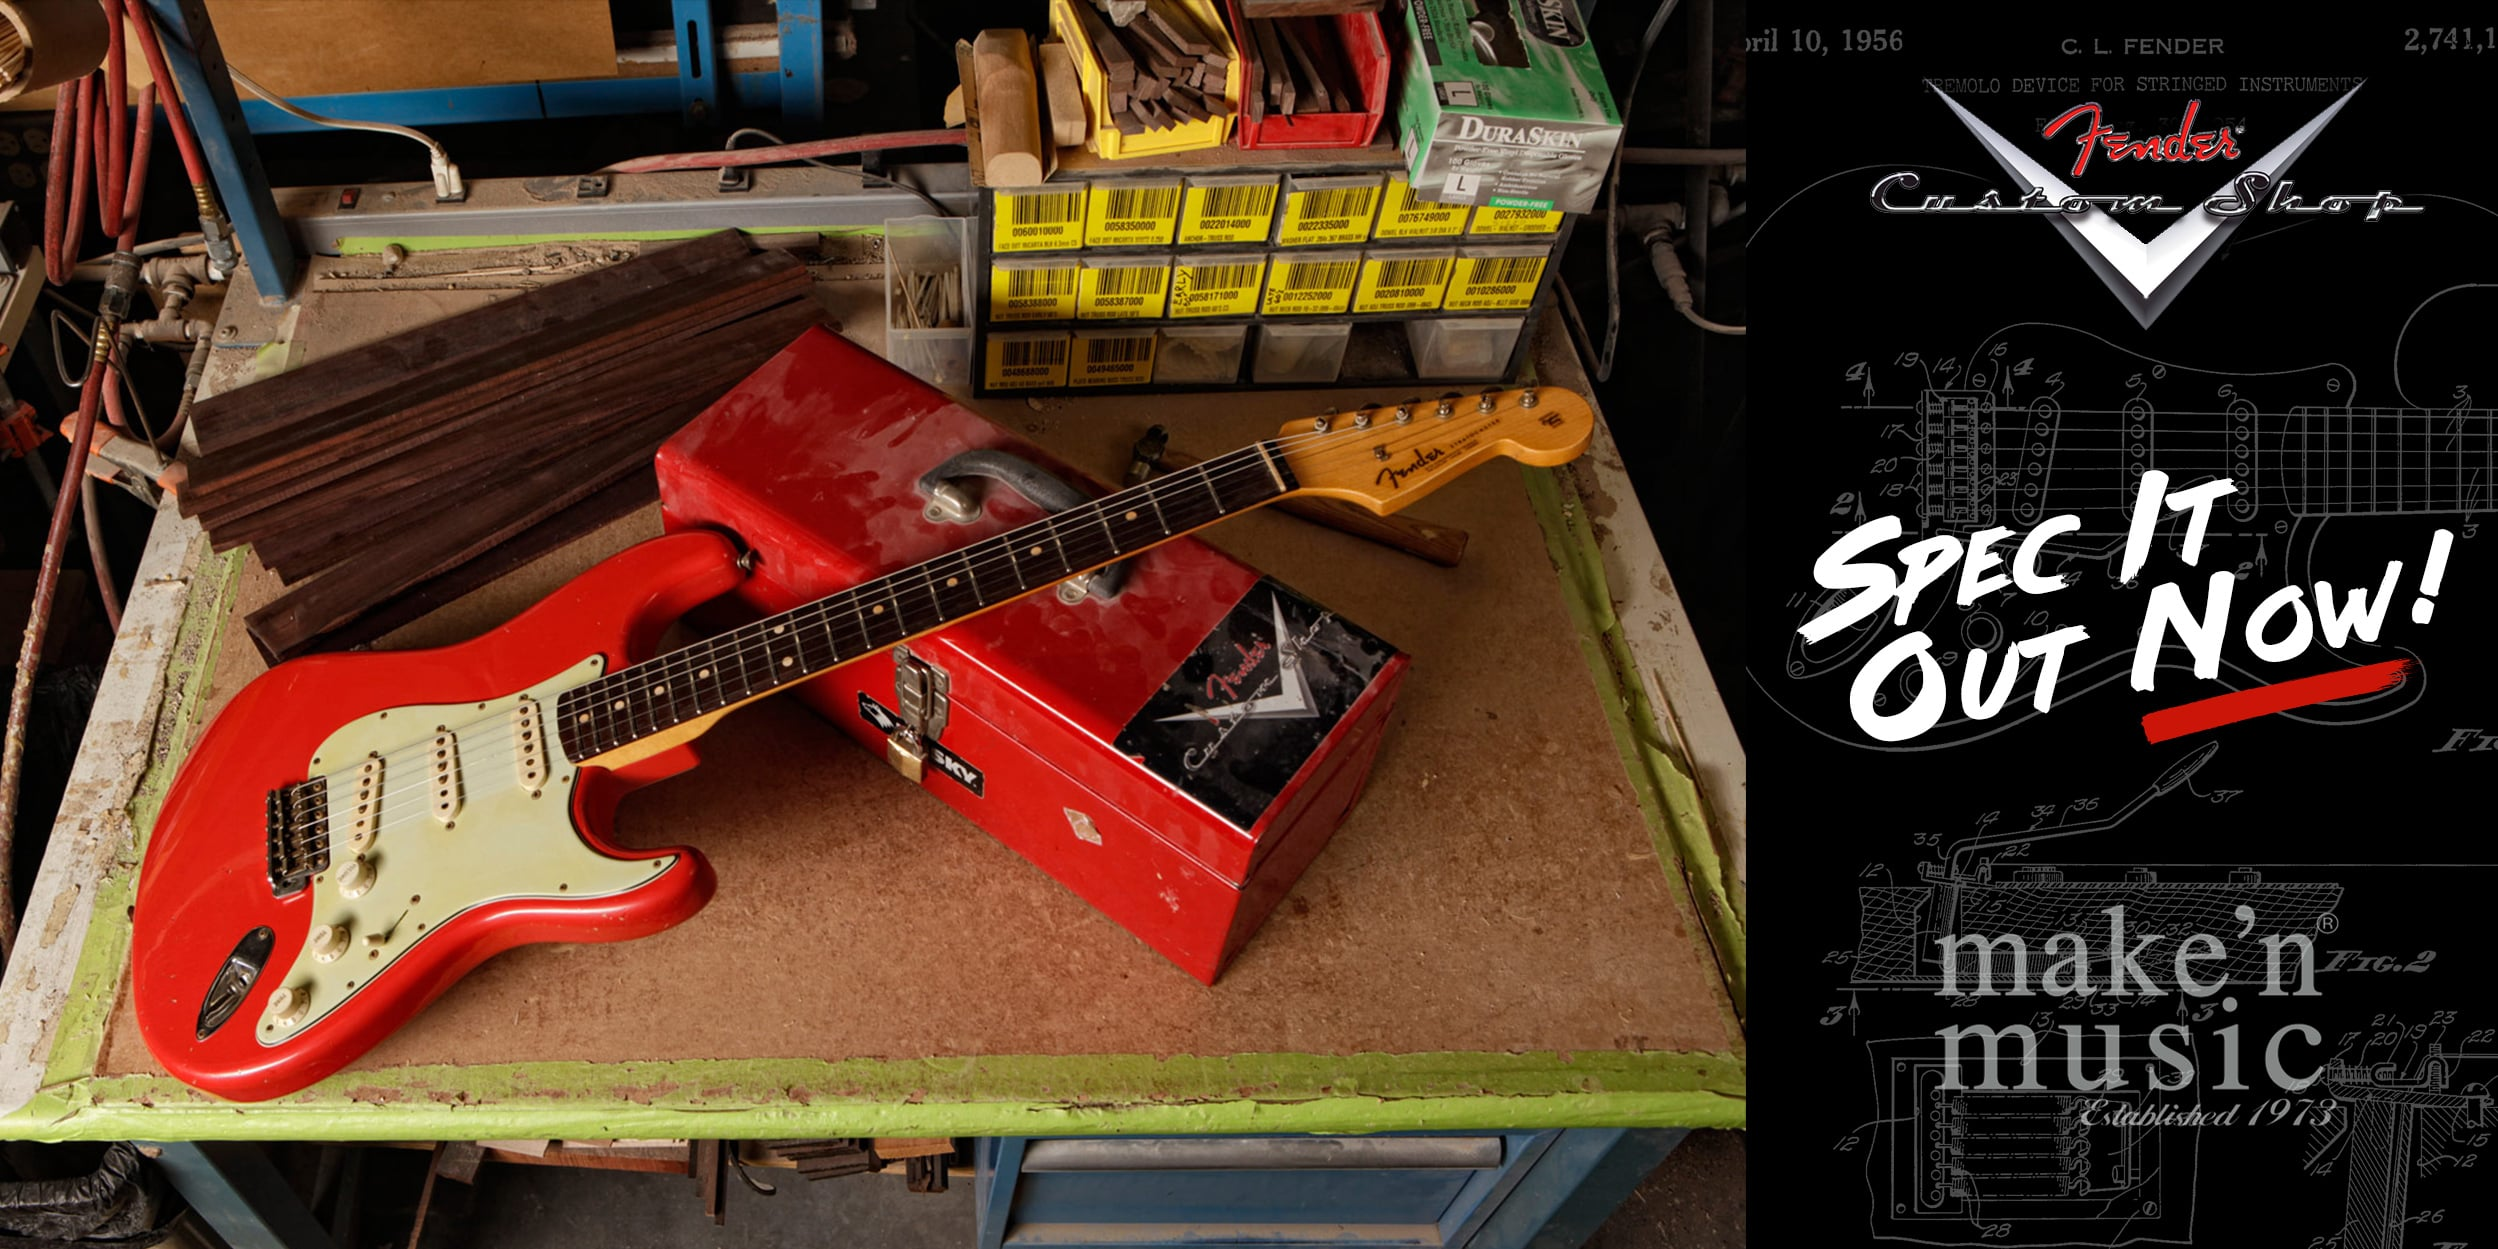 Fender Custom Shop - Spec Out Your Guitar Now